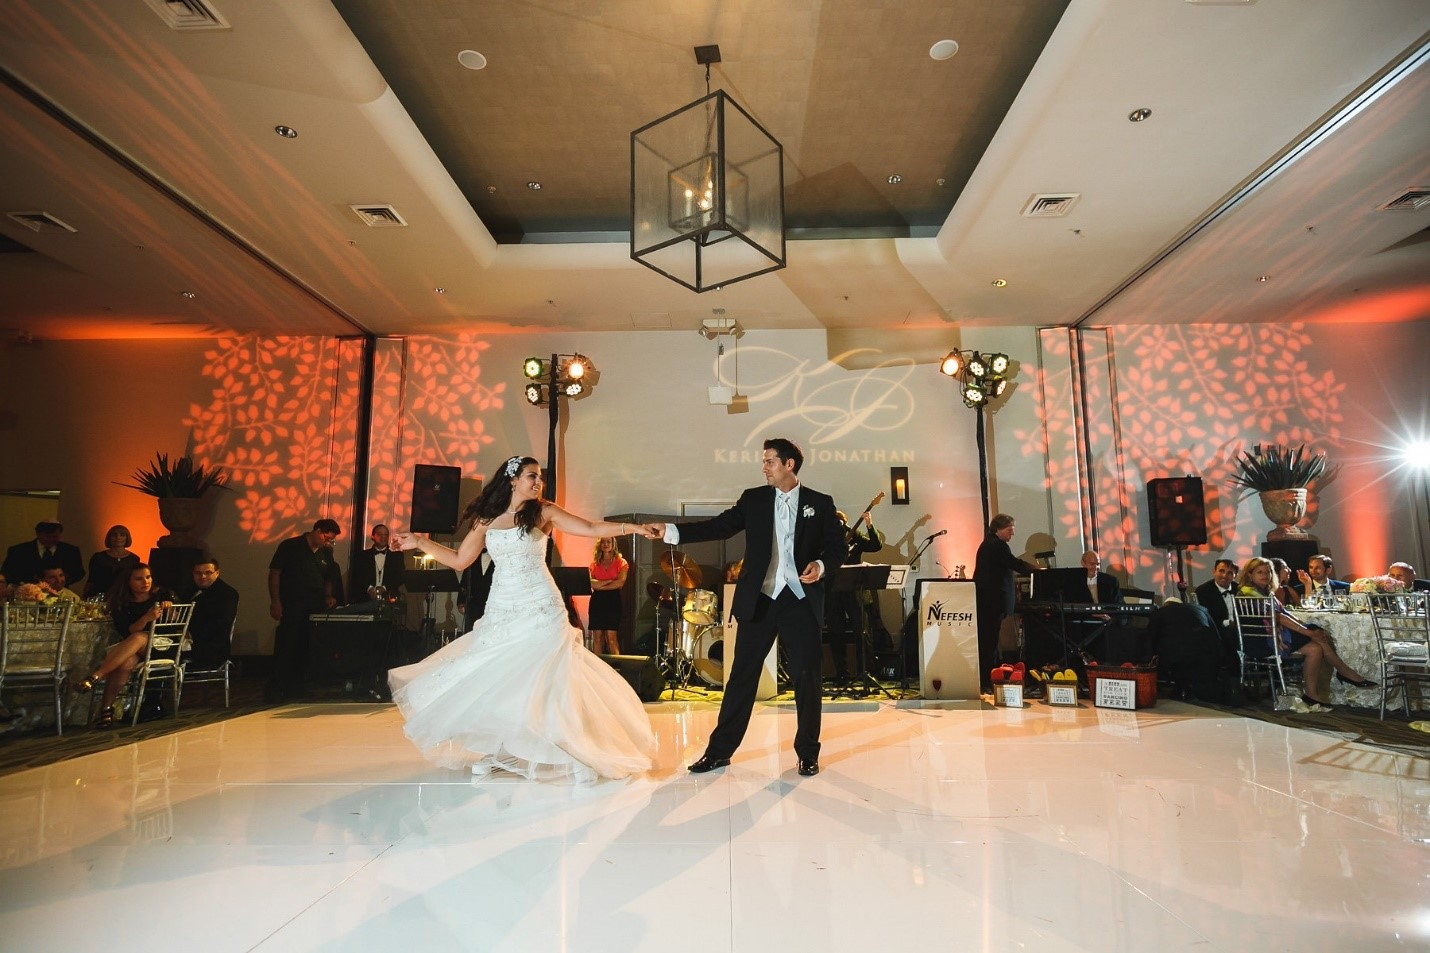 How To Dance At A Wedding.How To Make Sure You Can Dance In Your Wedding Dress